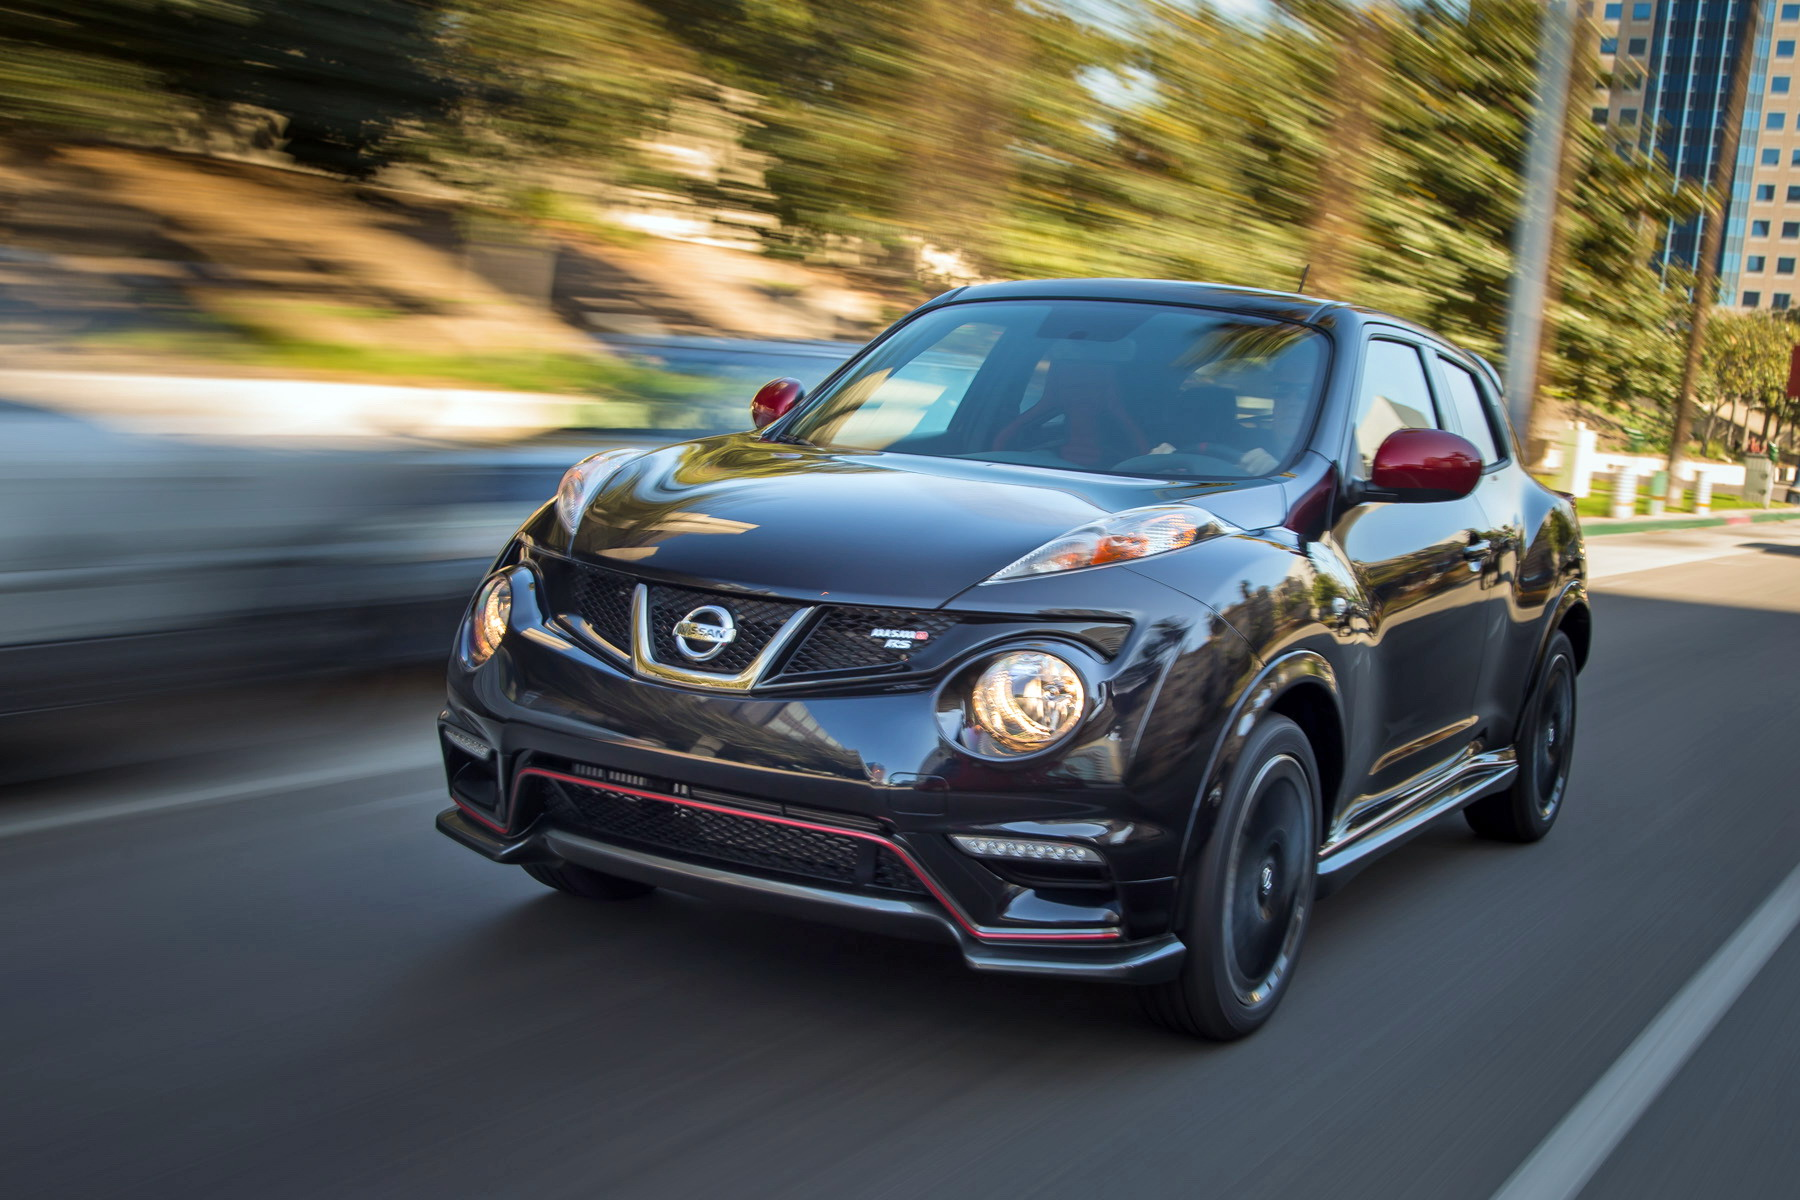 2014 nissan juke nismo rs review top speed. Black Bedroom Furniture Sets. Home Design Ideas